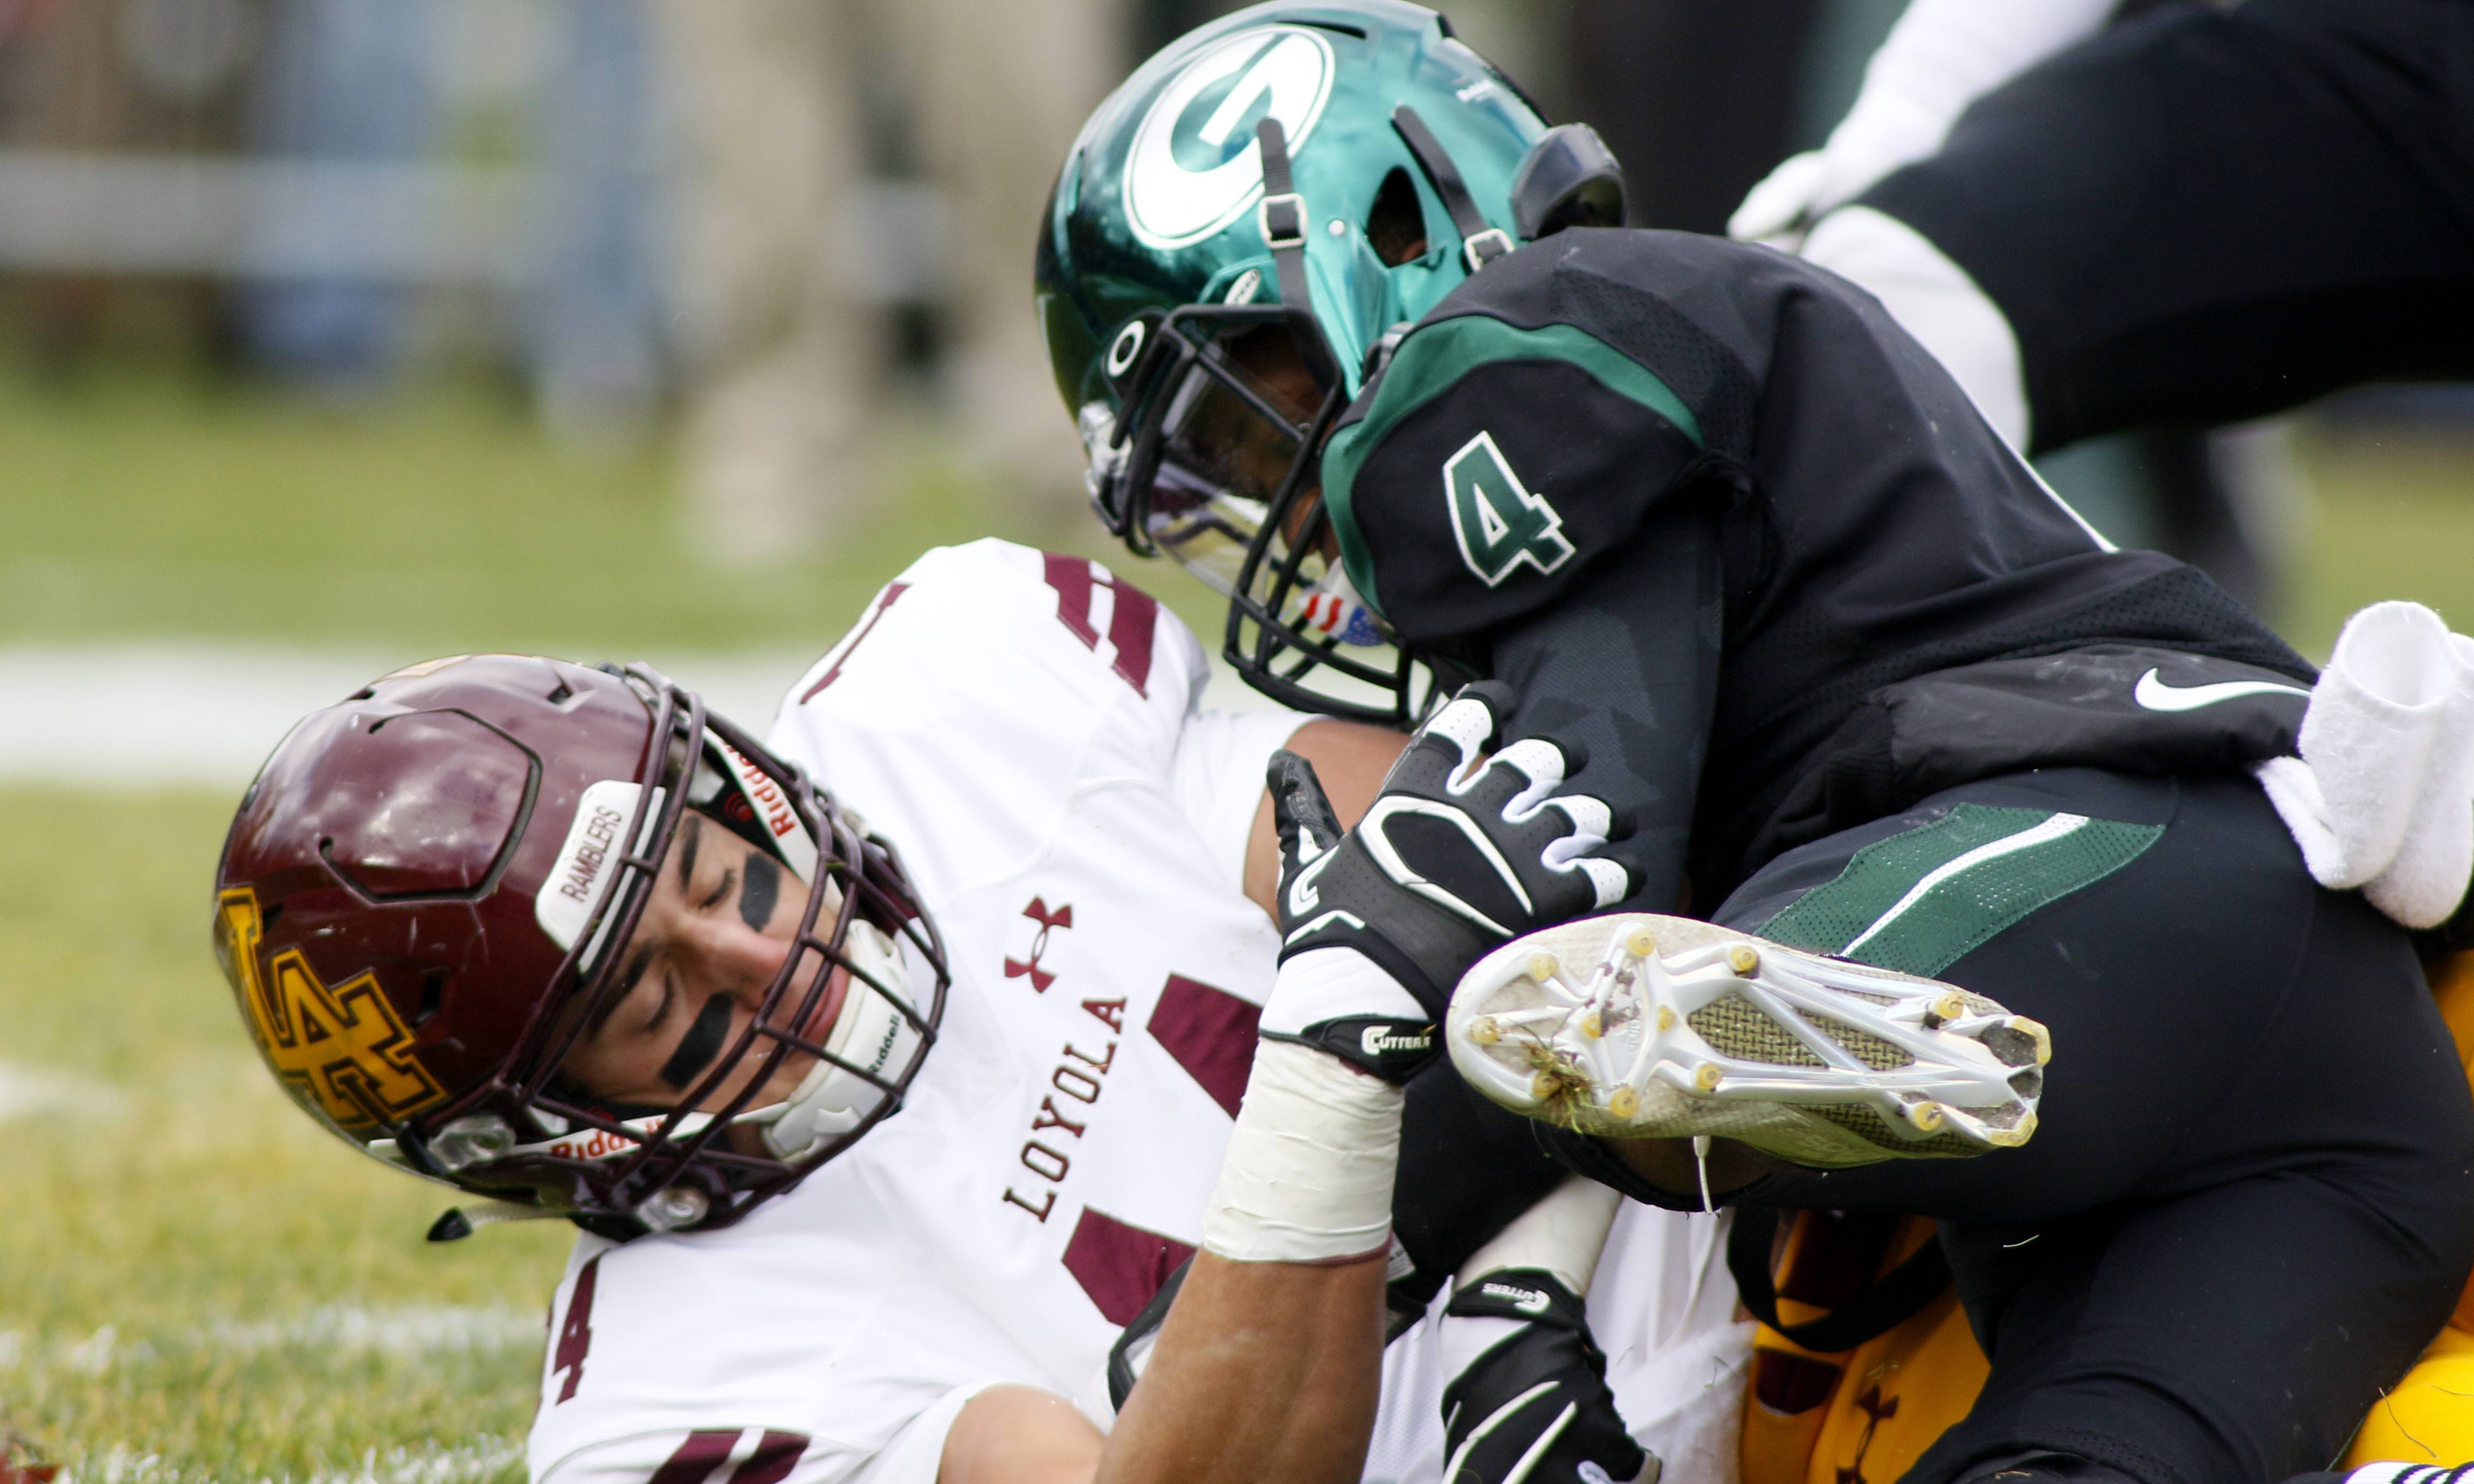 Loyola Academy's Jake Marwede, left, is brought down by Glenbard West's Justice Bradley (4) during Class 8A semifinal playoff football action in Glen Ellyn.